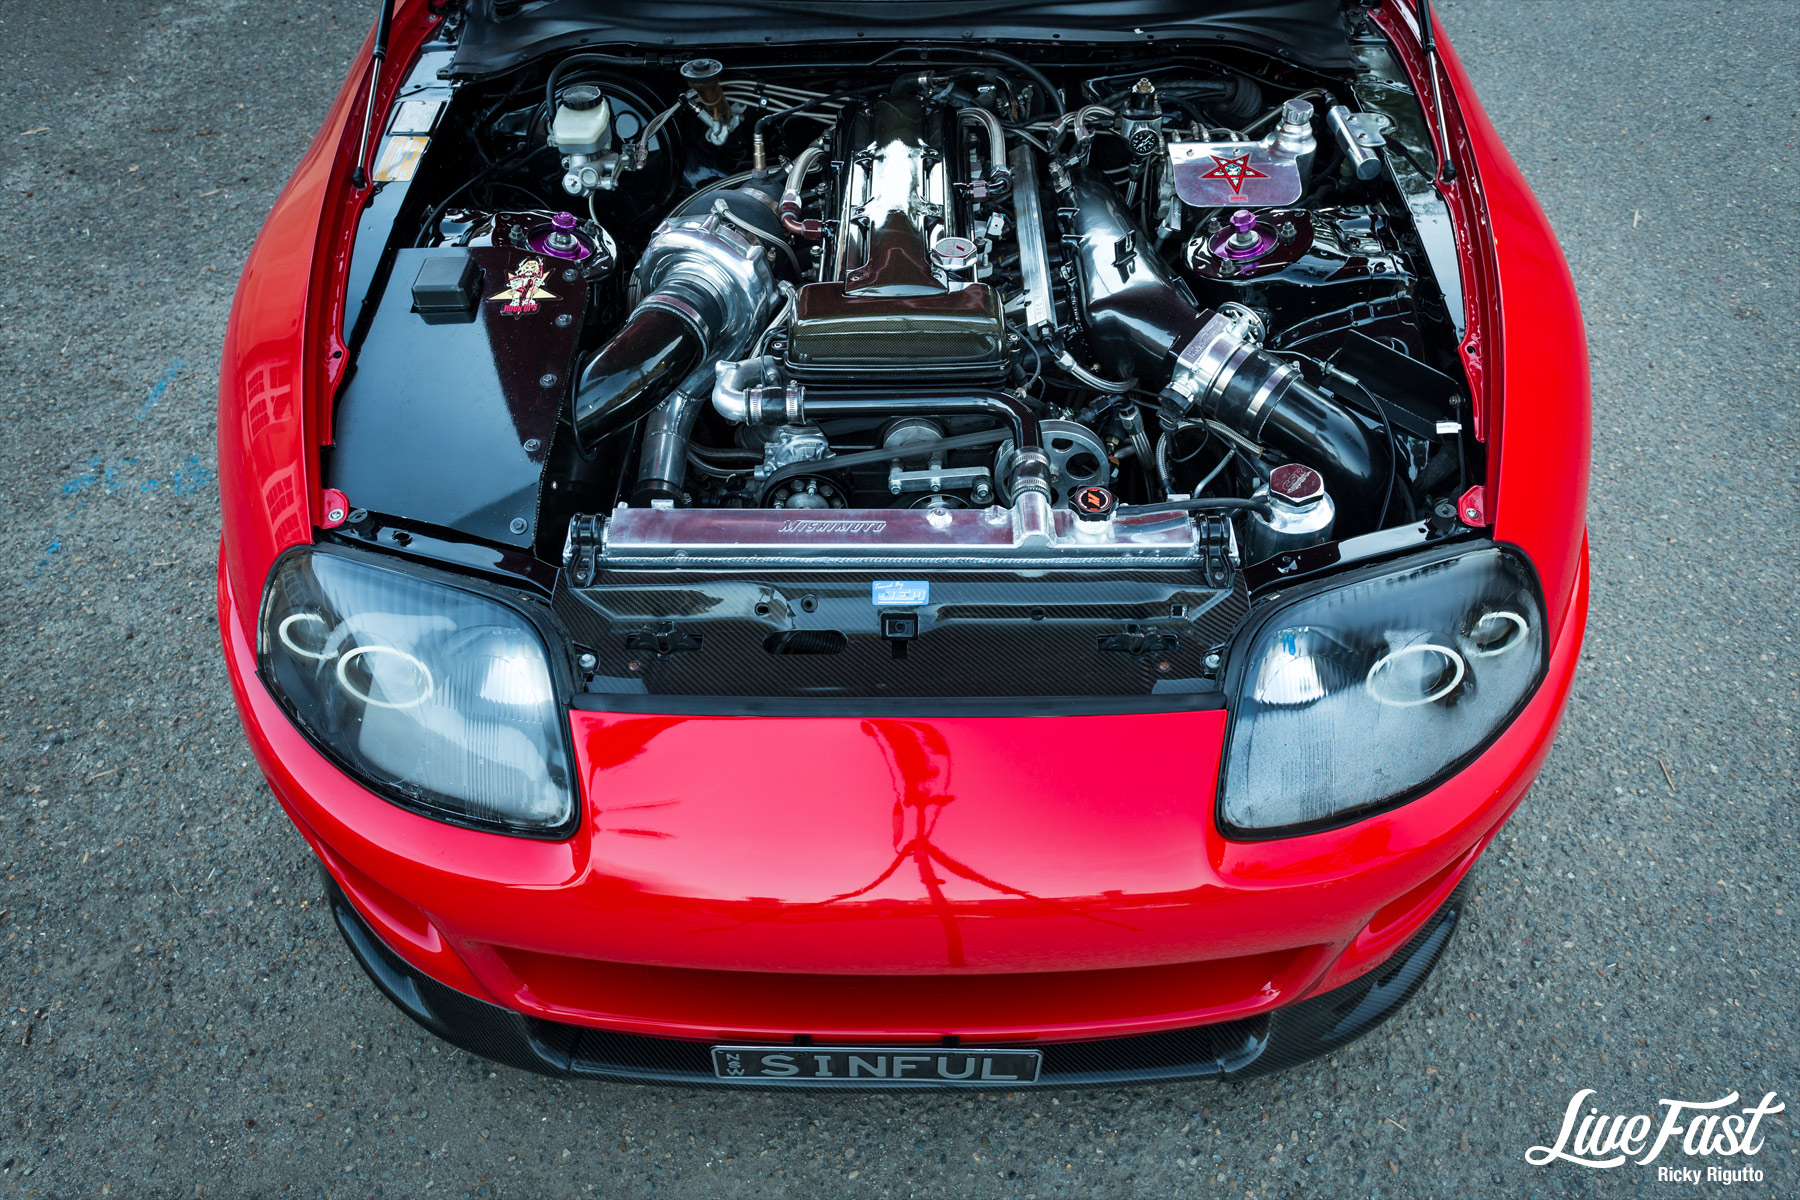 JOEL'S SINFUL 630KW SUPRA // JUNE FEATURE – Live Fast